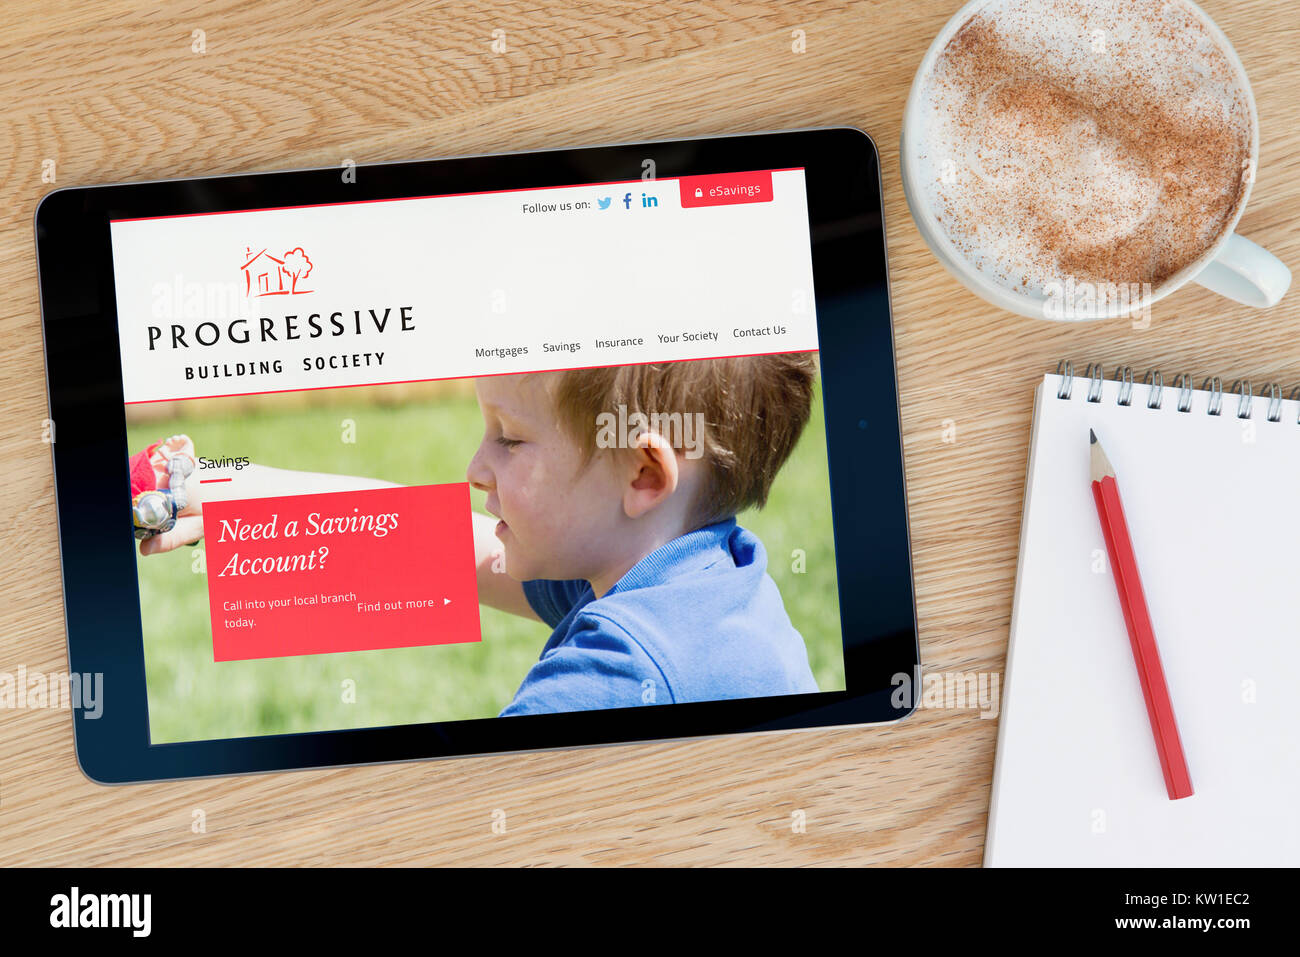 The Progressive Building Society website on an iPad tablet device, resting on a wooden table beside a notepad, pencil - Stock Image